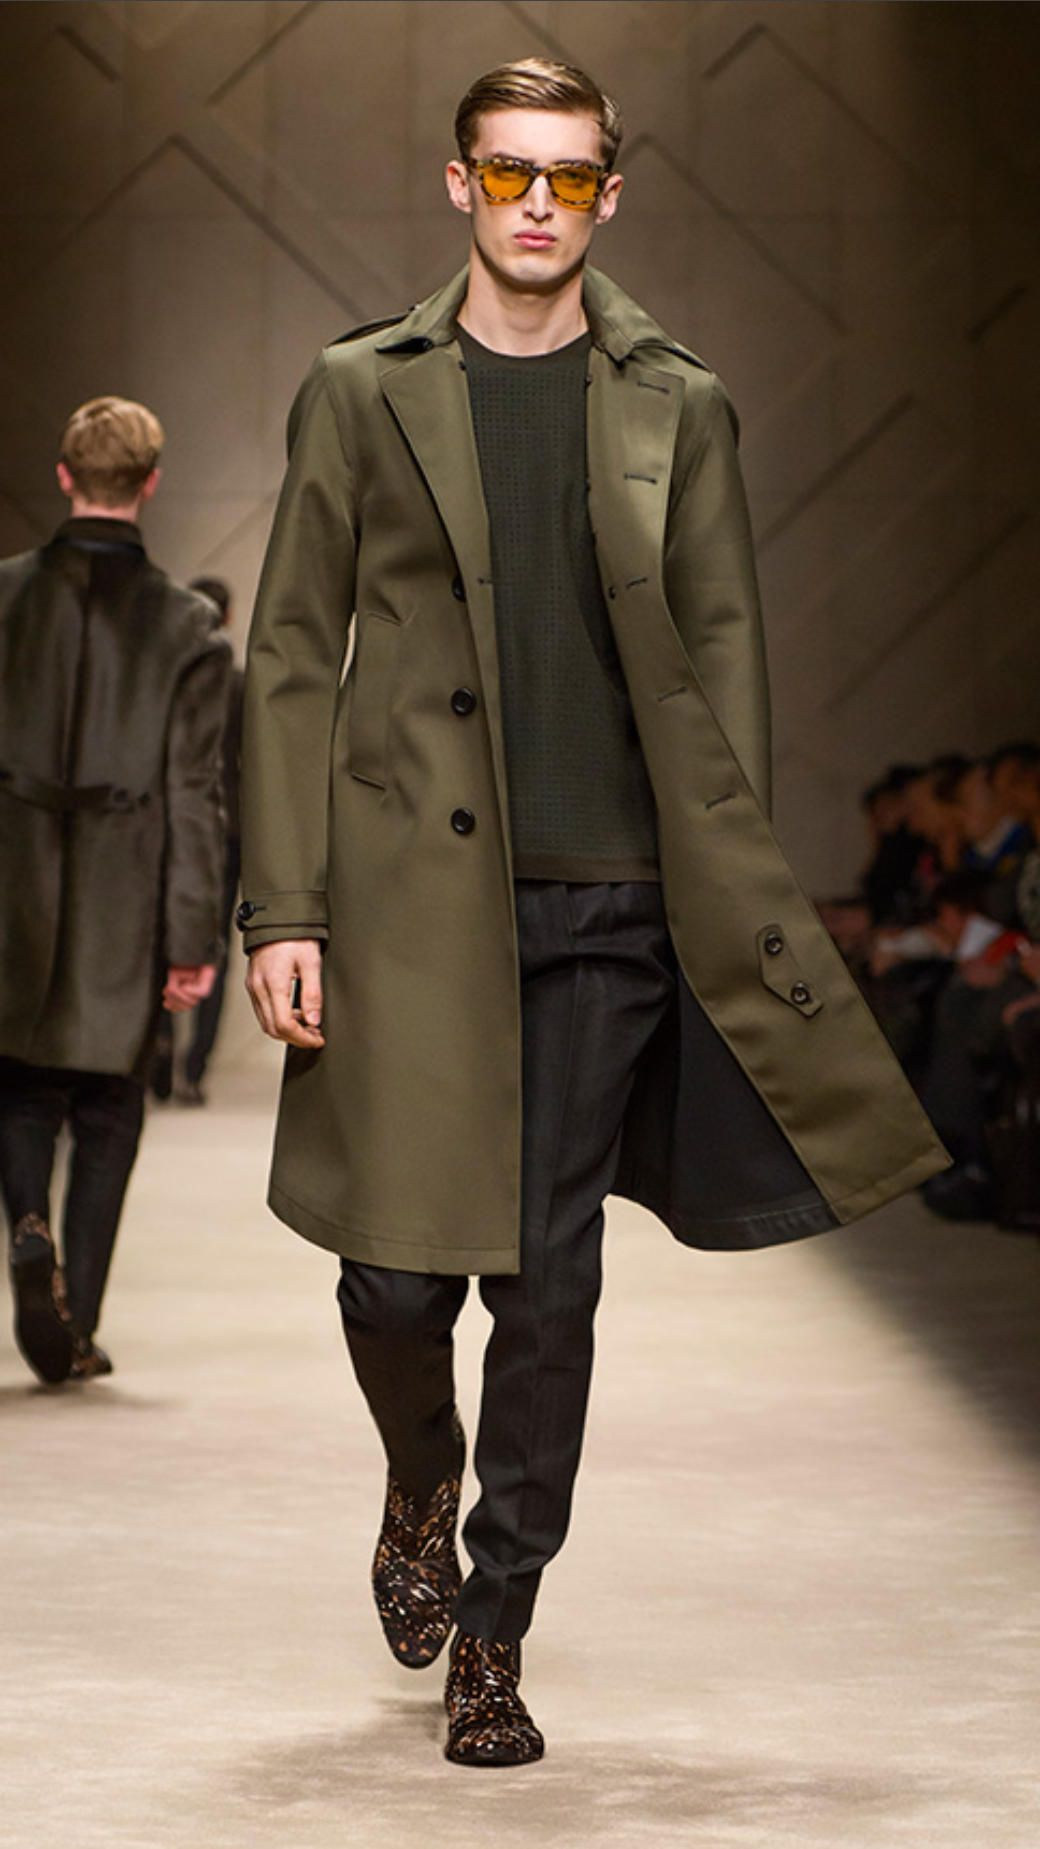 Pin By Rene Rene On Green Overcoats In 2019 Coat